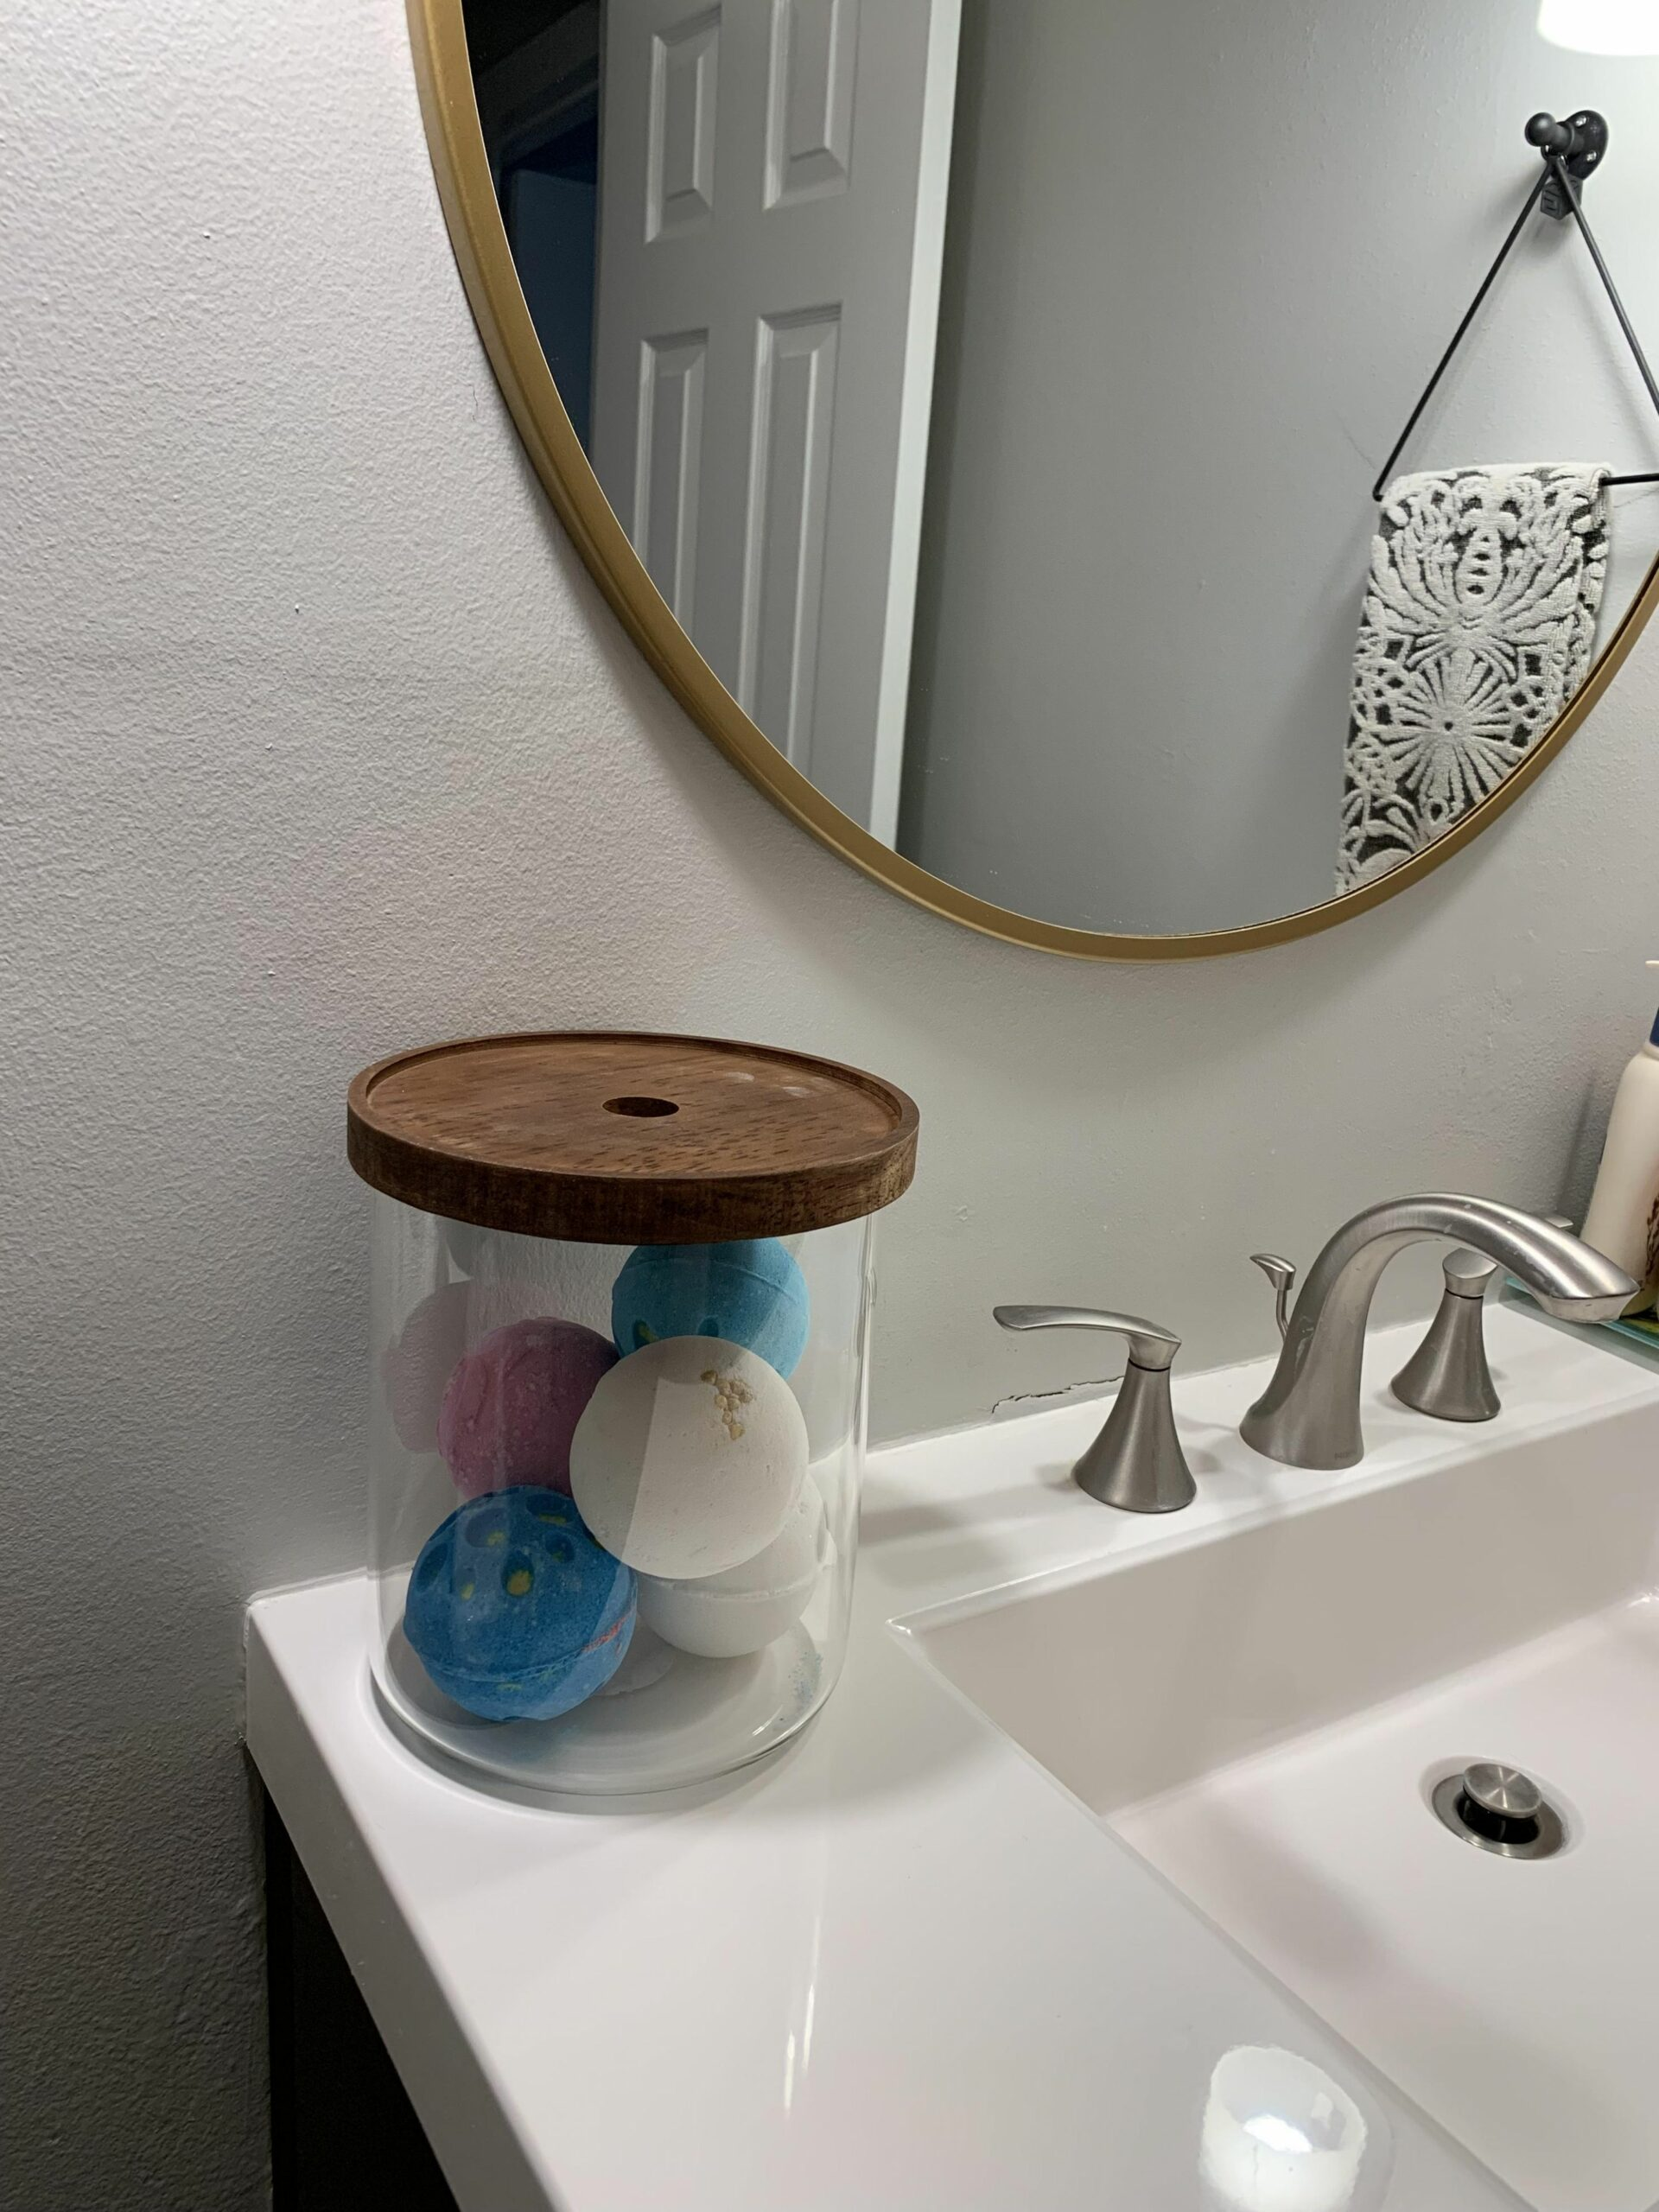 If you're looking for storage ideas, this jar from Target is ...